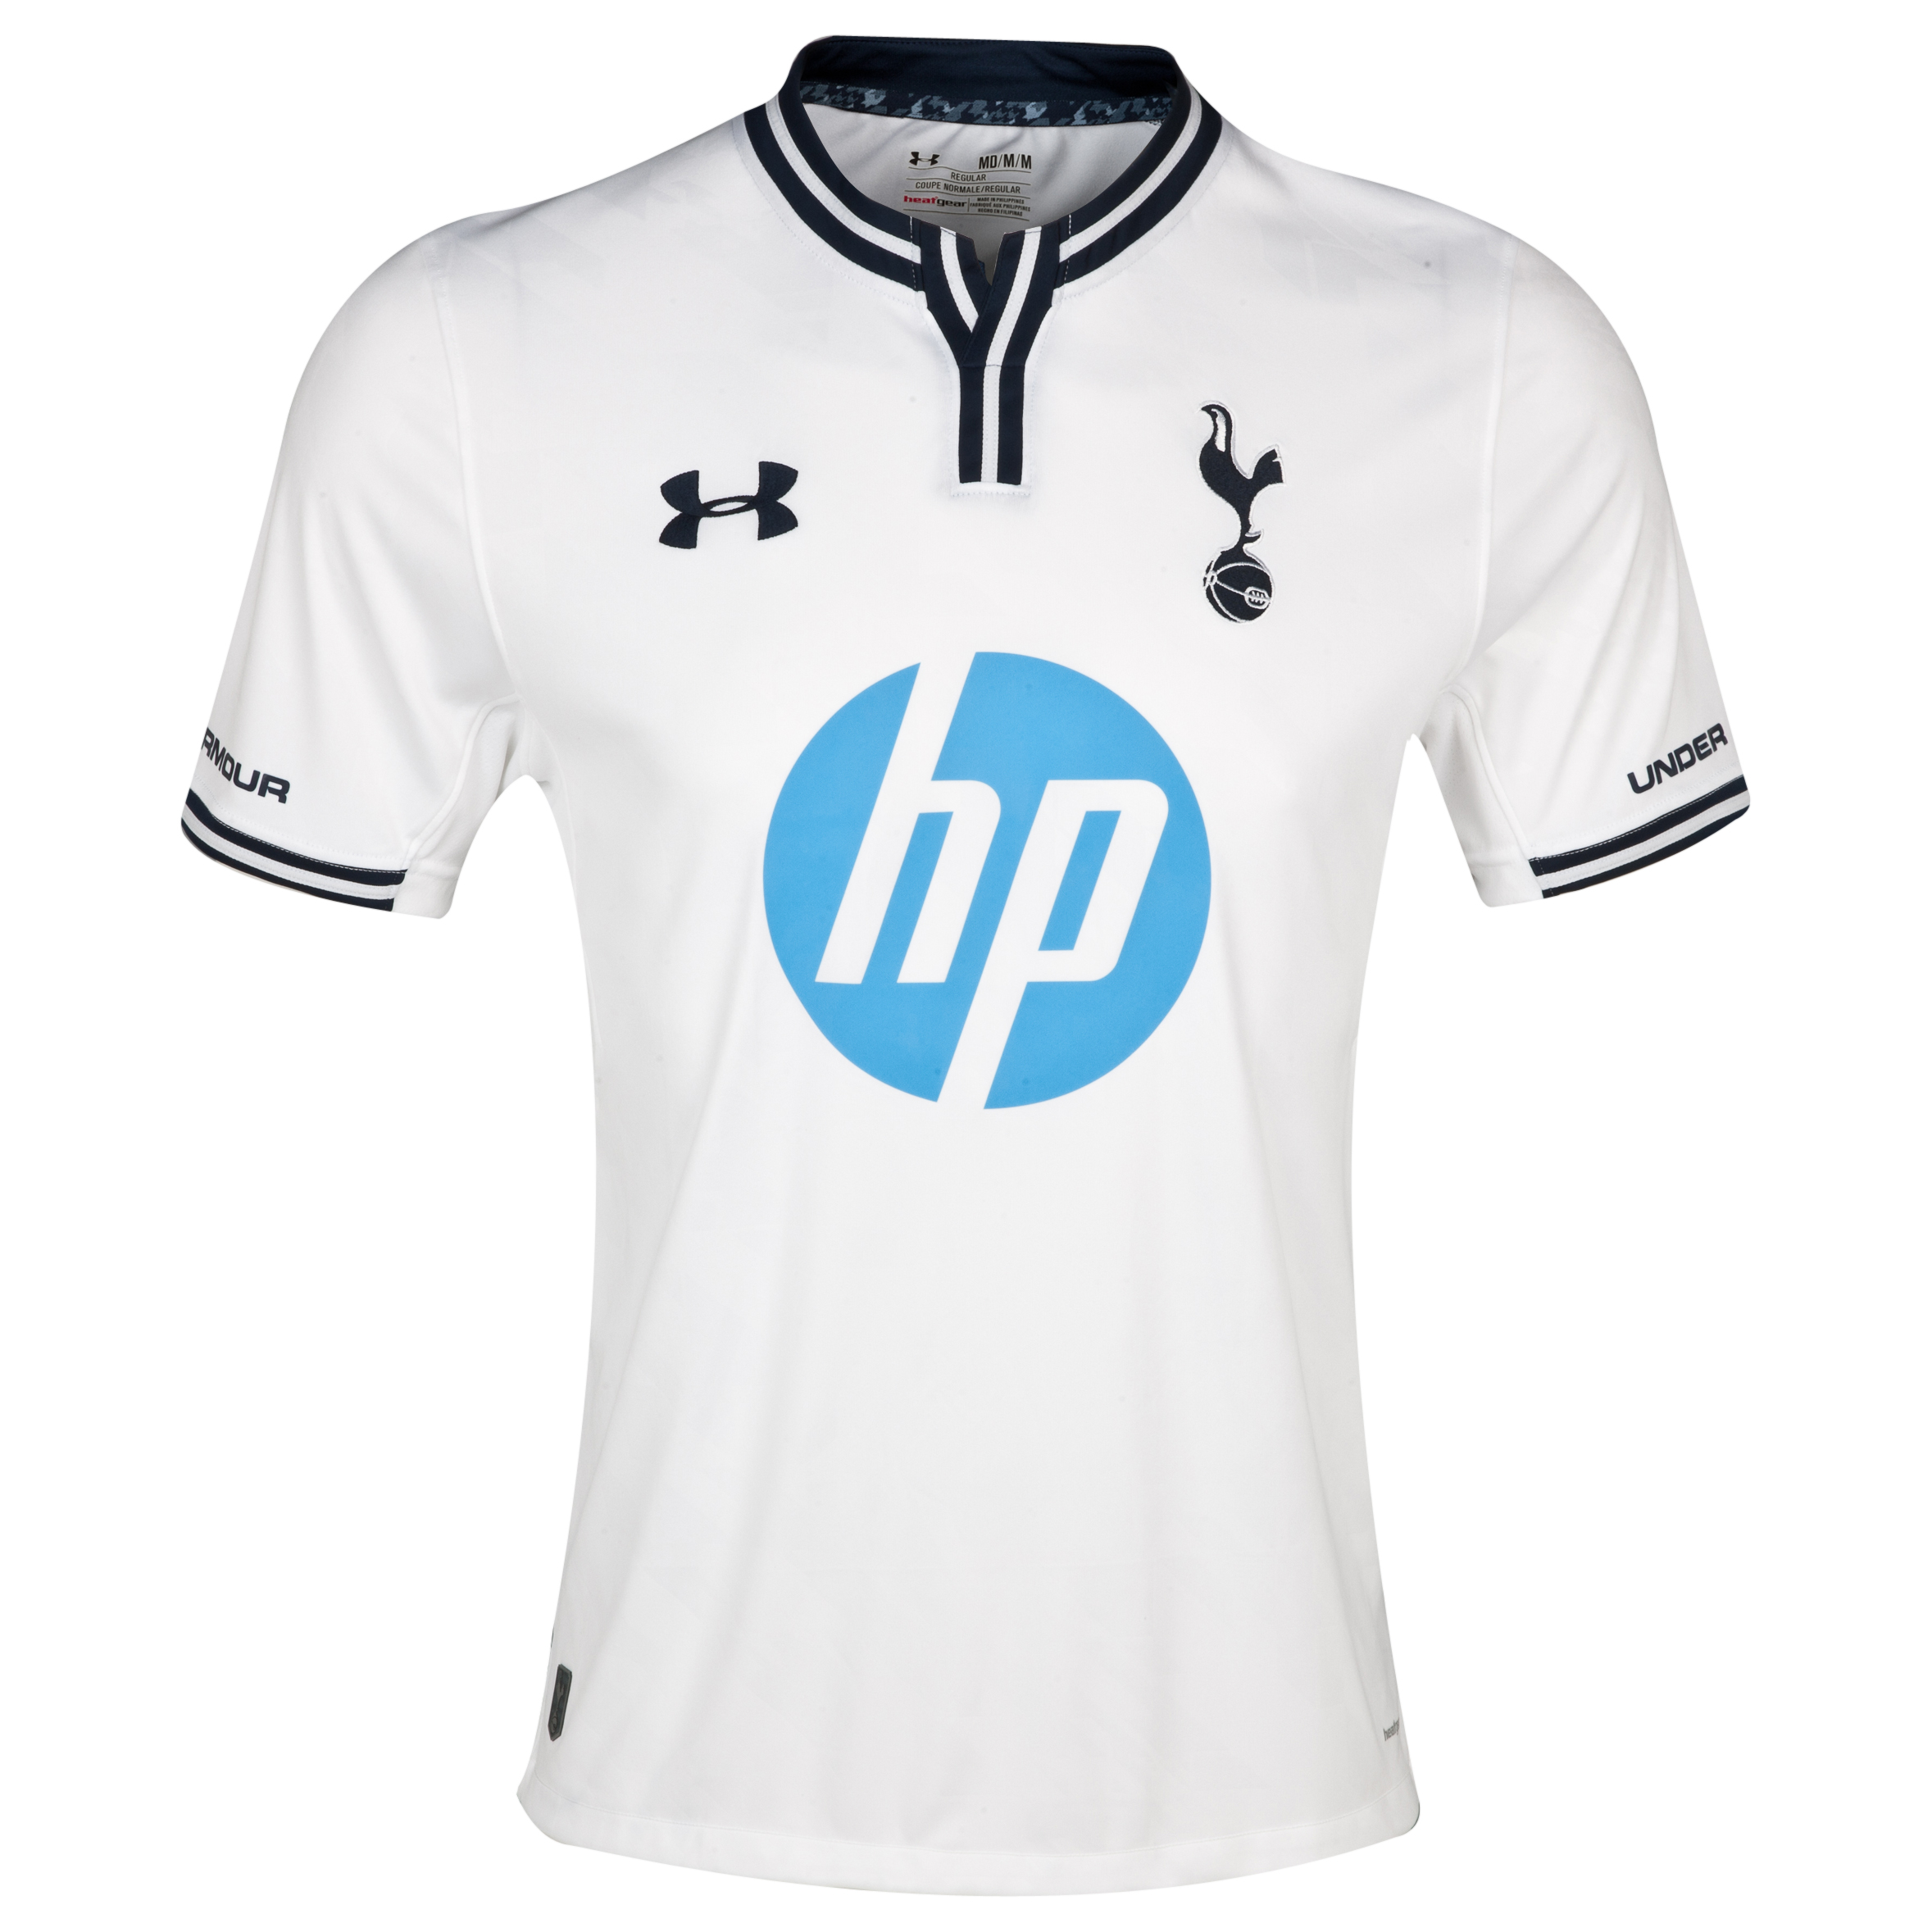 Tottenham Hotspur Home Shirt 2013/14 - Kids